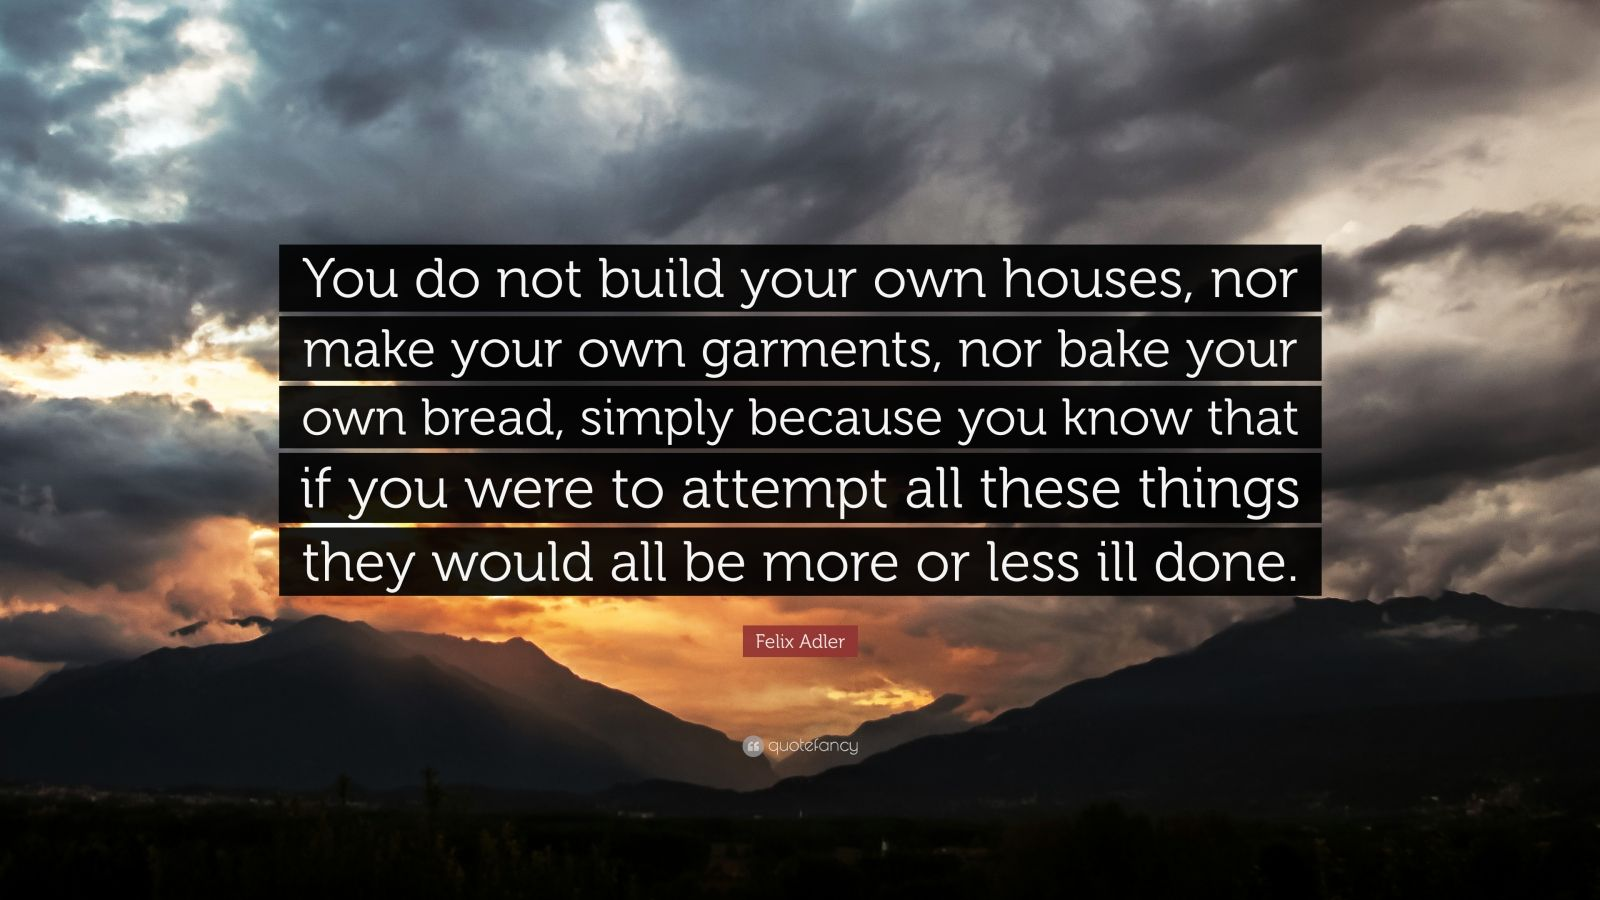 "Felix Adler Quote: ""You do not build your own houses, nor make your own garments, nor bake your own bread, simply because you know that if you were to attempt all these things they would all be more or less ill done."""